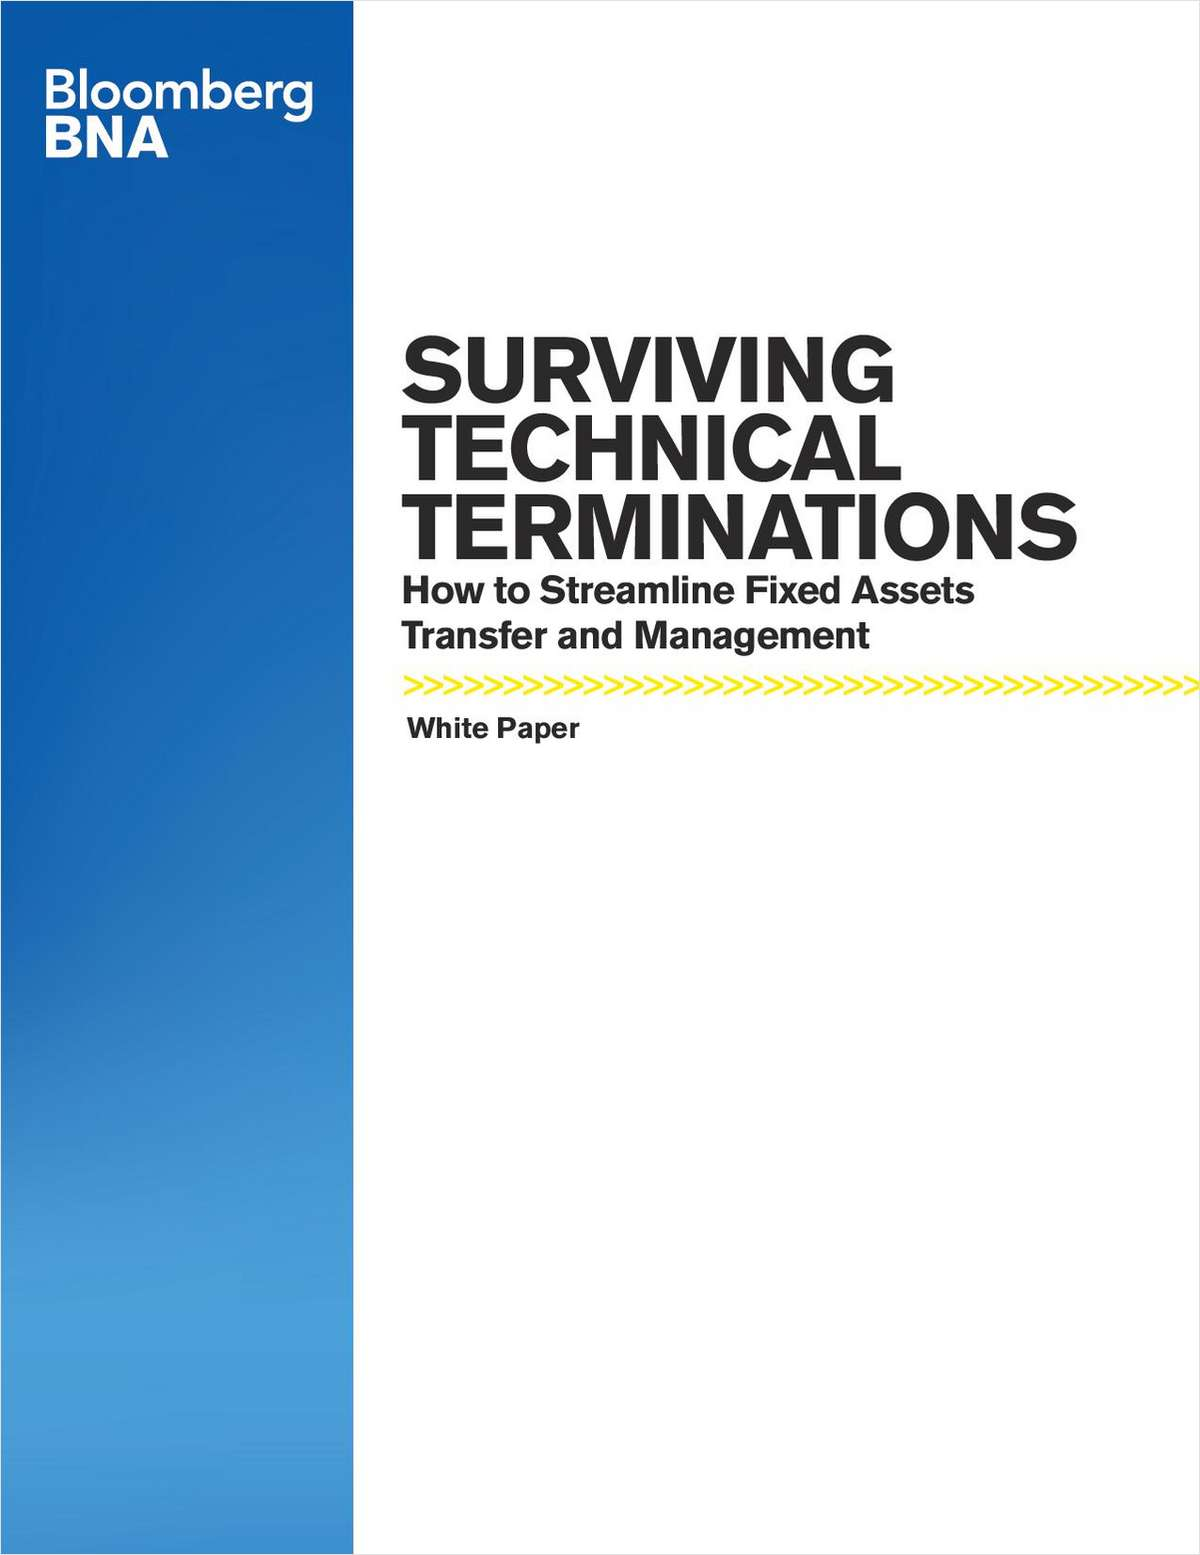 Surviving Technical Terminations: How to Streamline Fixed Assets Transfer and Management